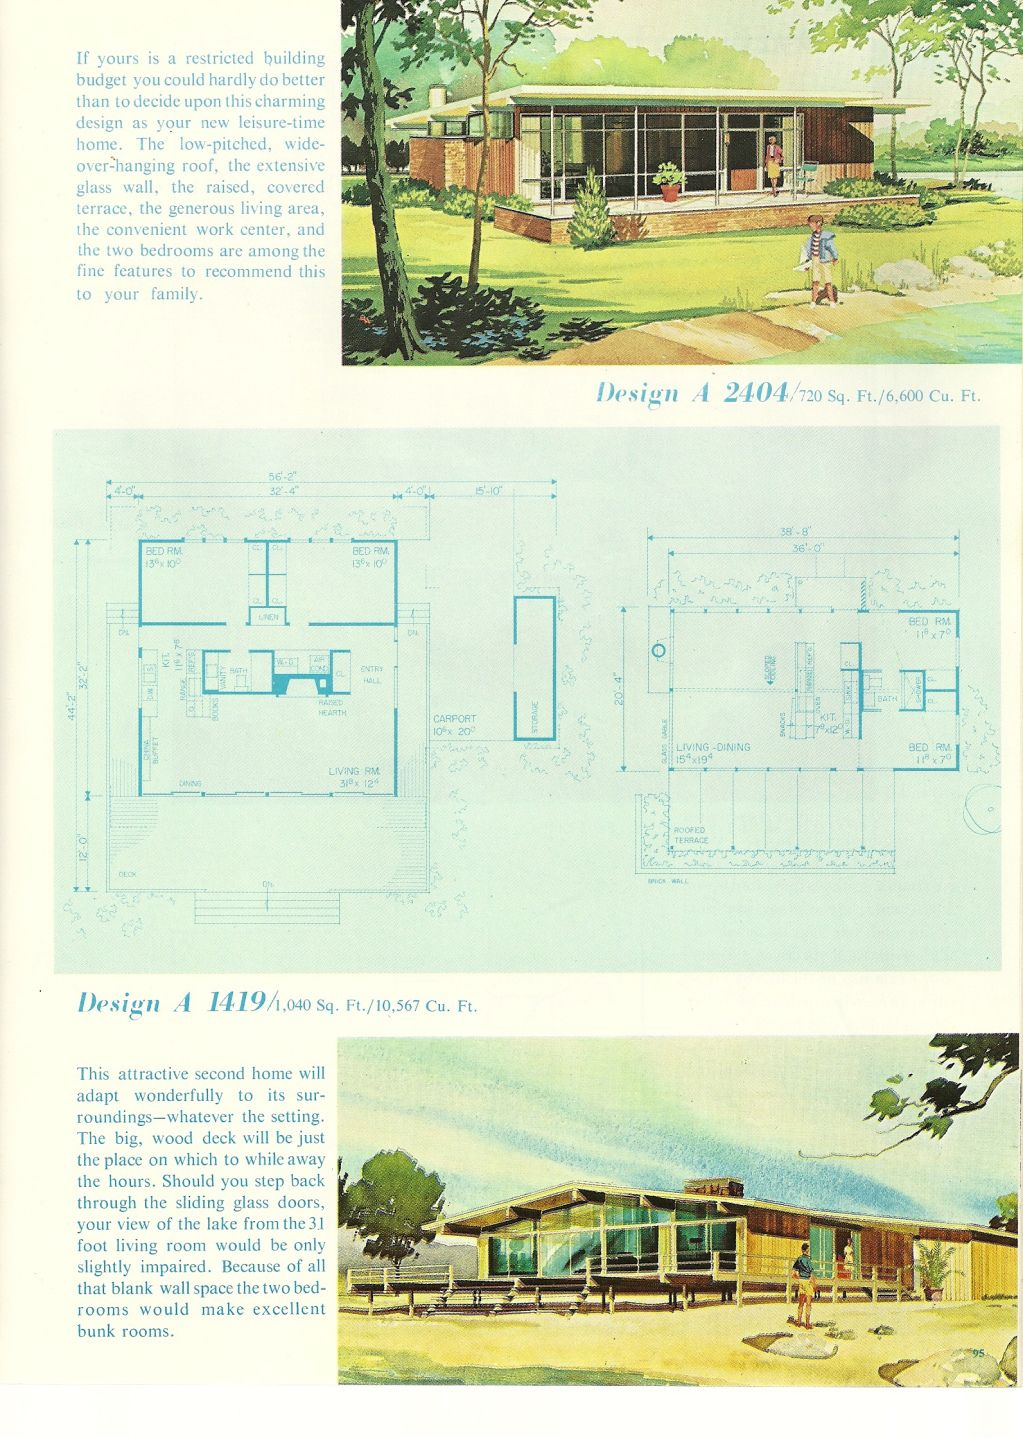 Vintage Vacation Homes 149 Vacation House Plans Vintage House Plans Mid Century Modern House Plans